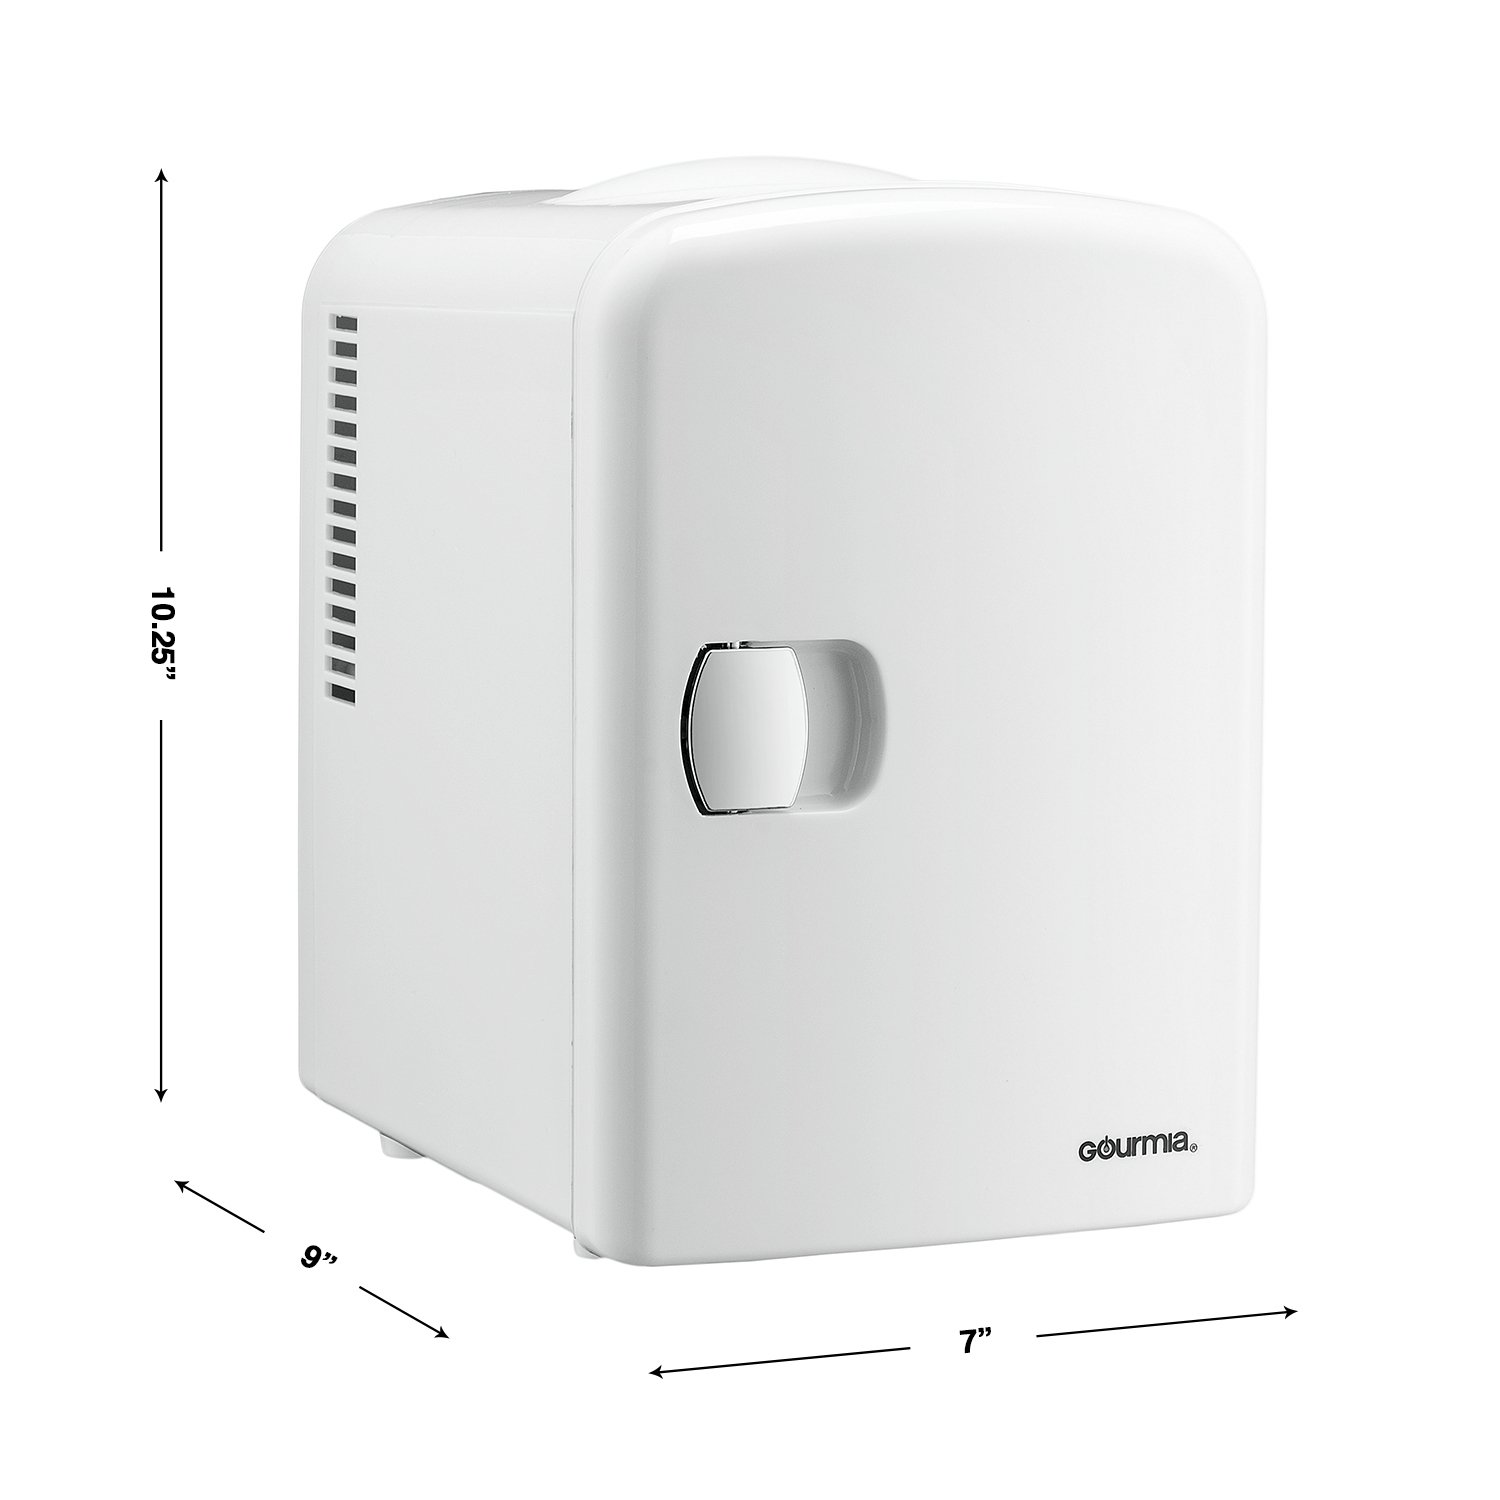 Gourmia GMF600 Thermoelectric Mini Fridge Cooler and Warmer - 4 Liter/6 Can - For Home,Office, Car, Dorm or Boat - Compact & Portable - AC & DC Power Cords - White by Gourmia (Image #9)